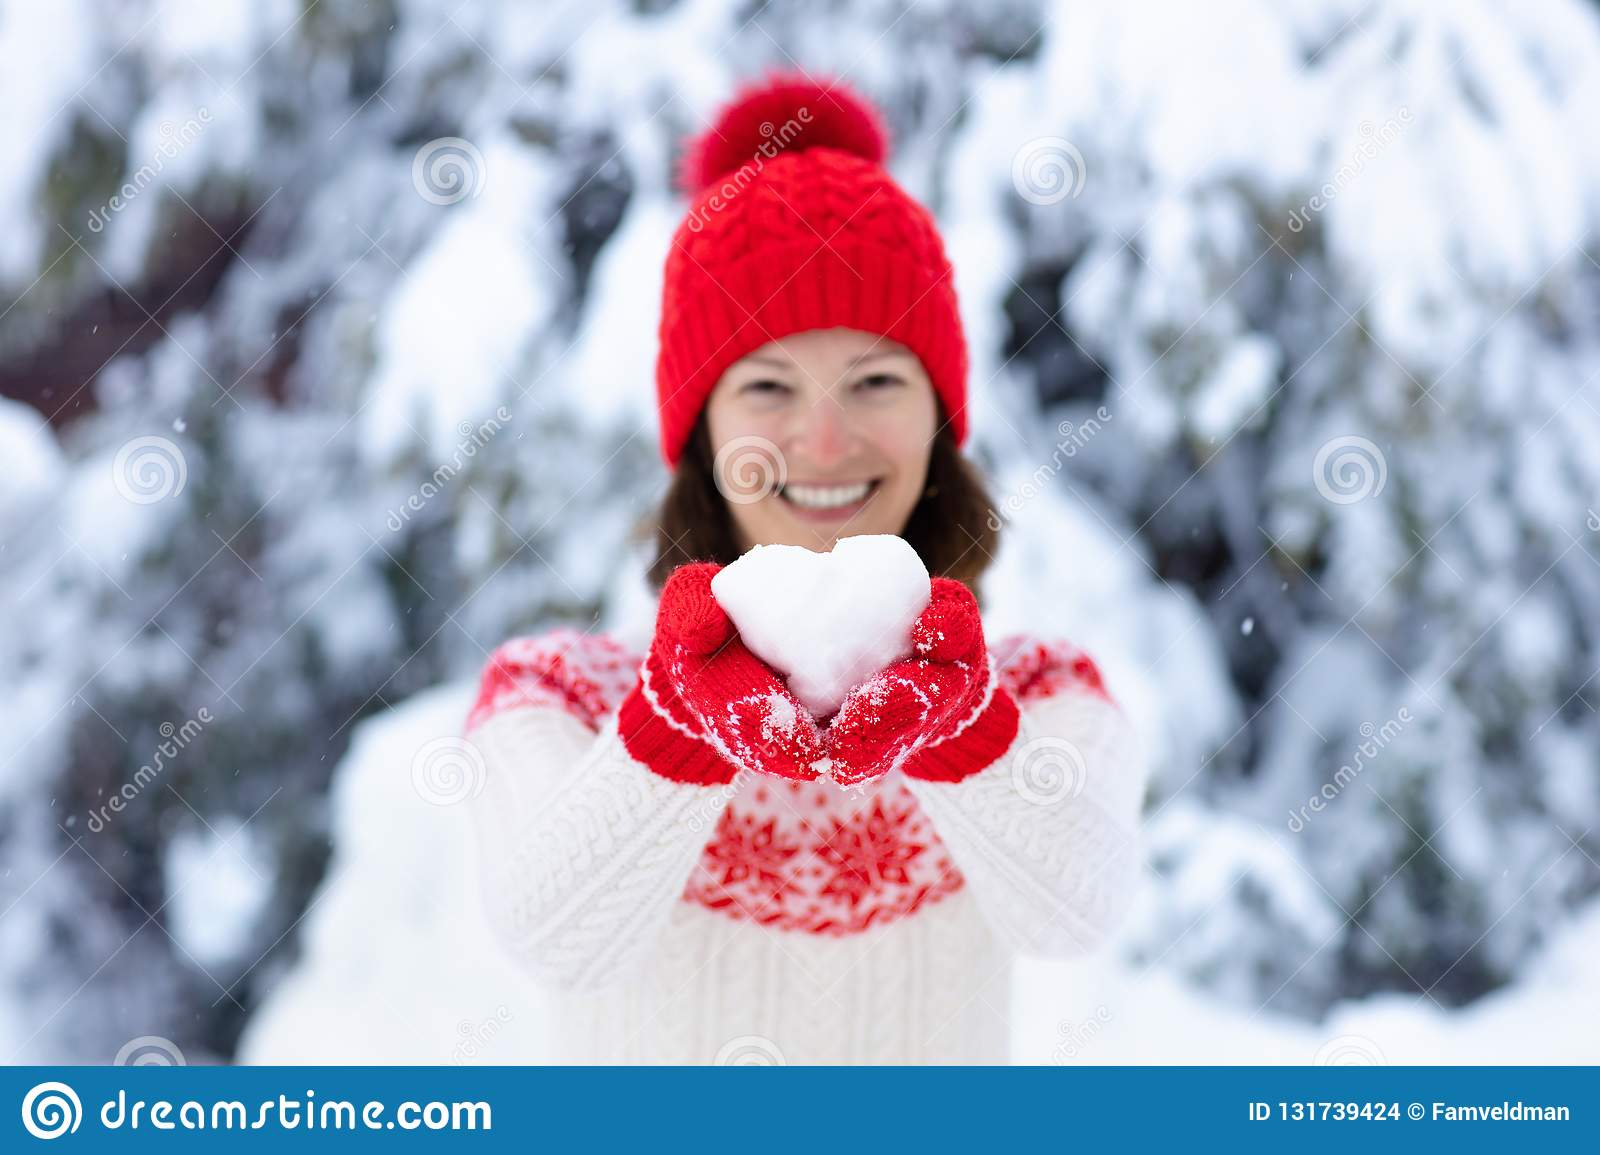 Young woman in knitted sweater holding heart shape snow ball in winter. Girl in family snow fight game. Female in knit handmade